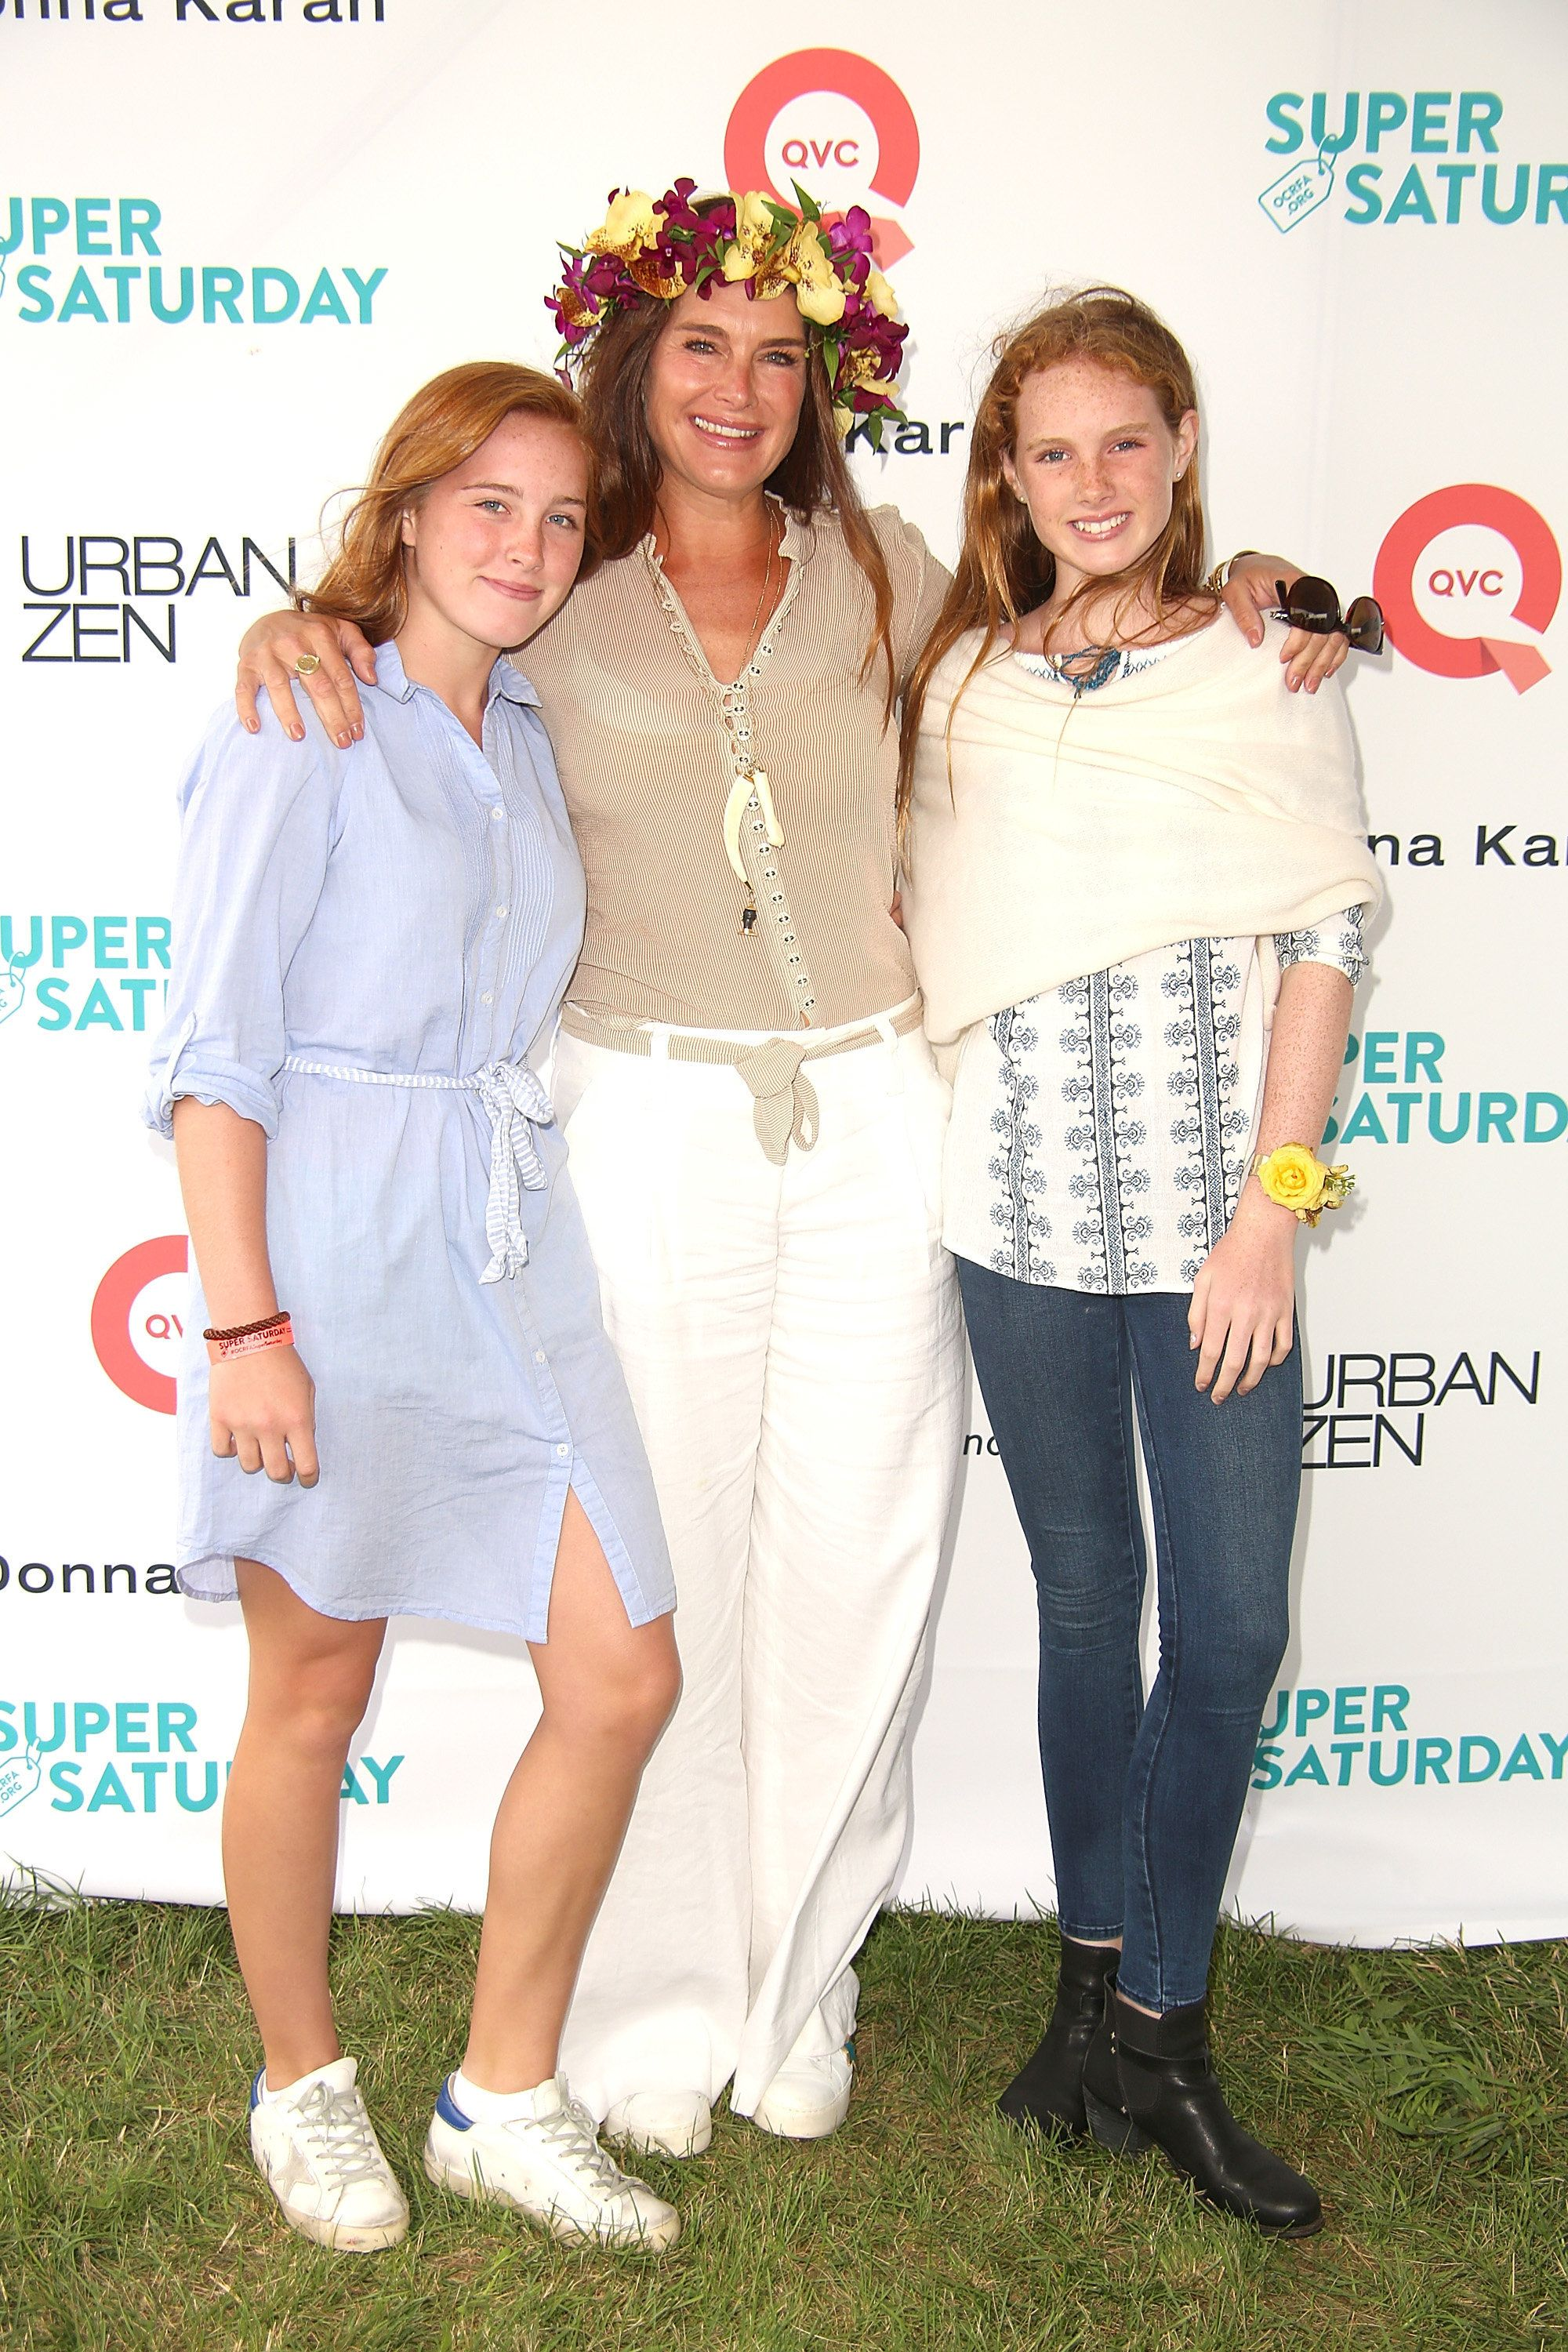 Rowan Henchy, Brooke Shields, and Grier Henchy attend the 20th Annual Super Saturday to benefit the Ovarian Cancer Research F